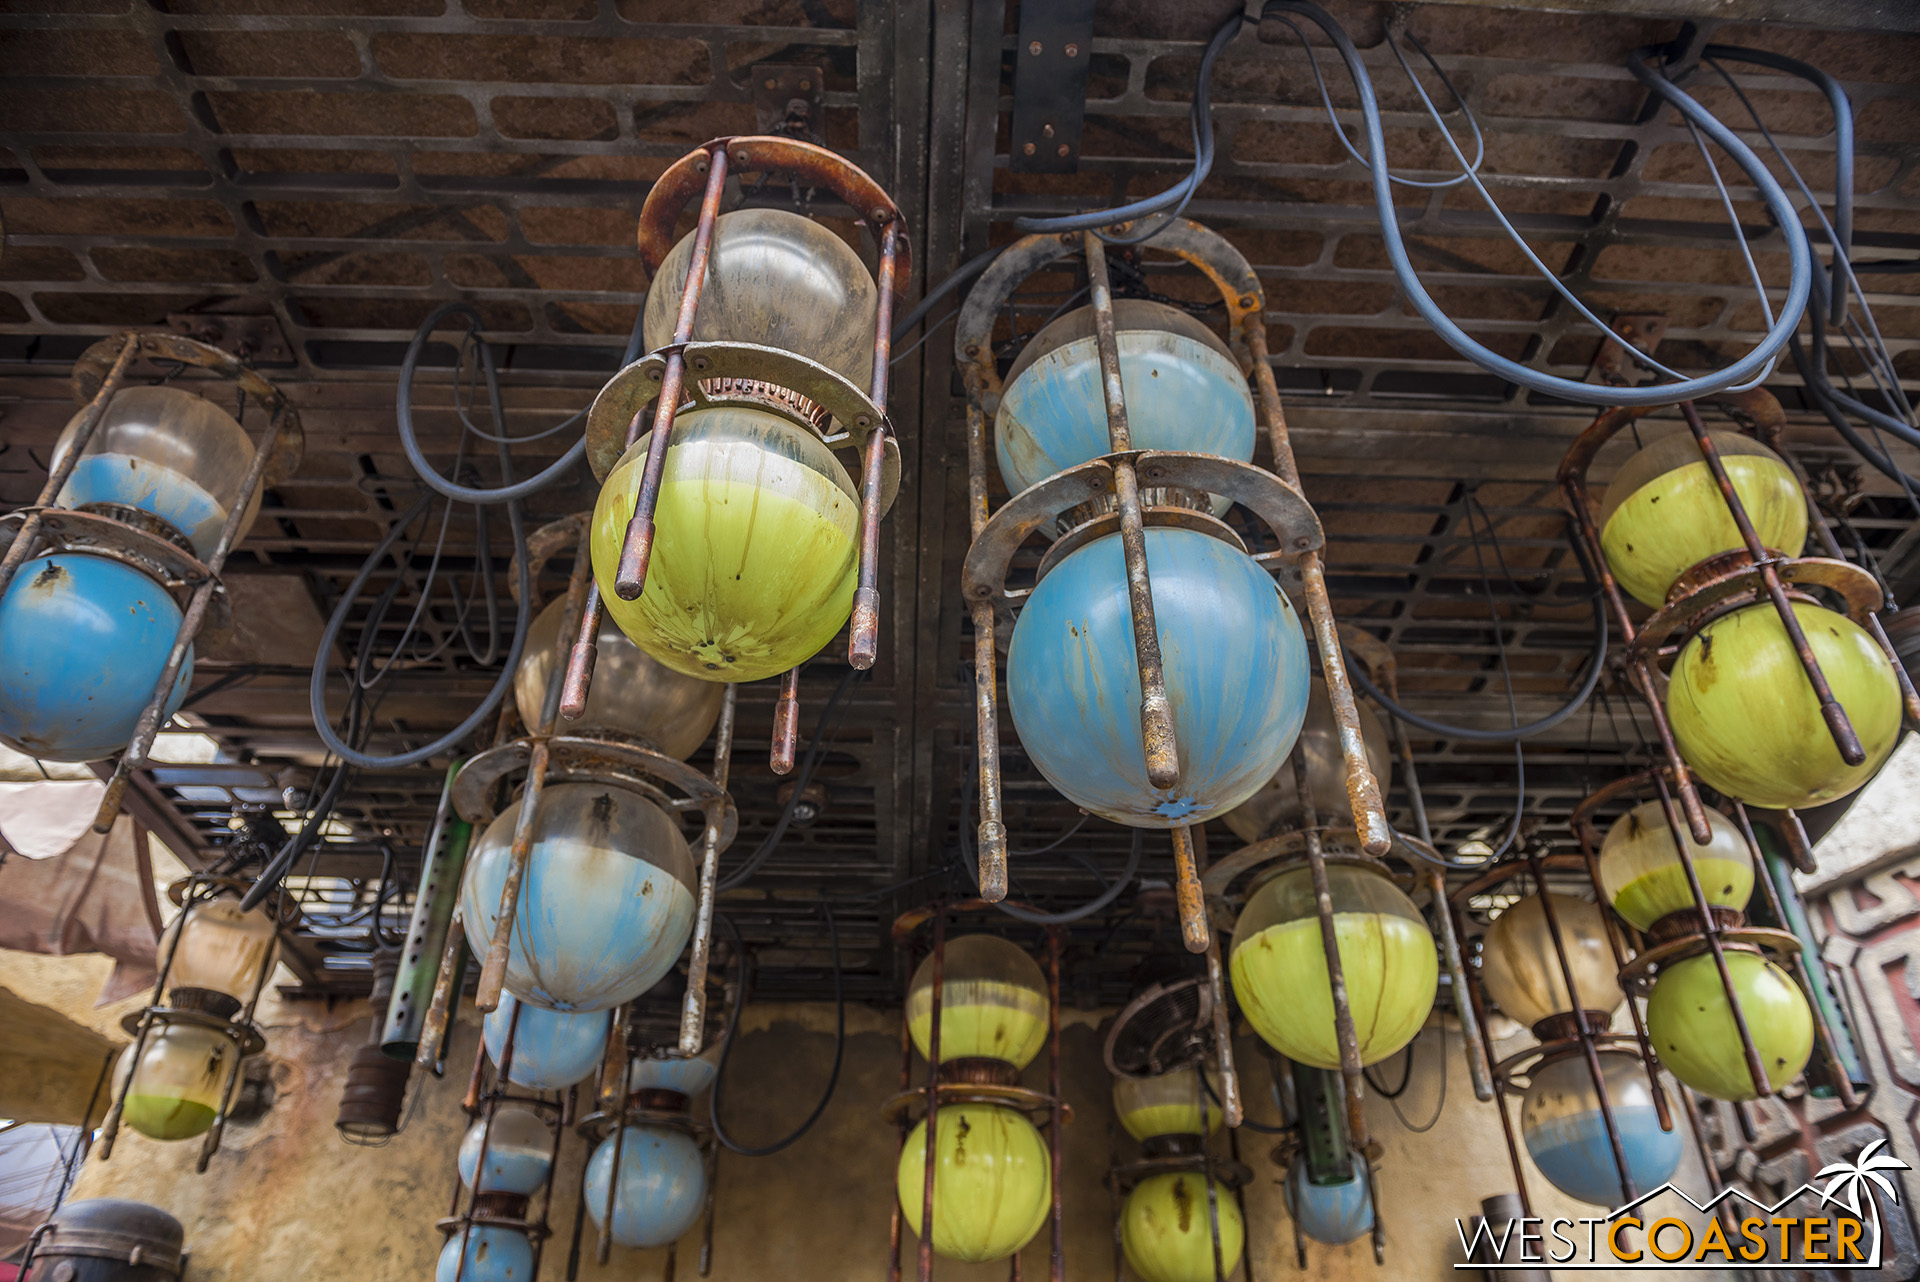 Hanging containers of Blue and Green Milk hang from above, to be dispensed into servings for guests.